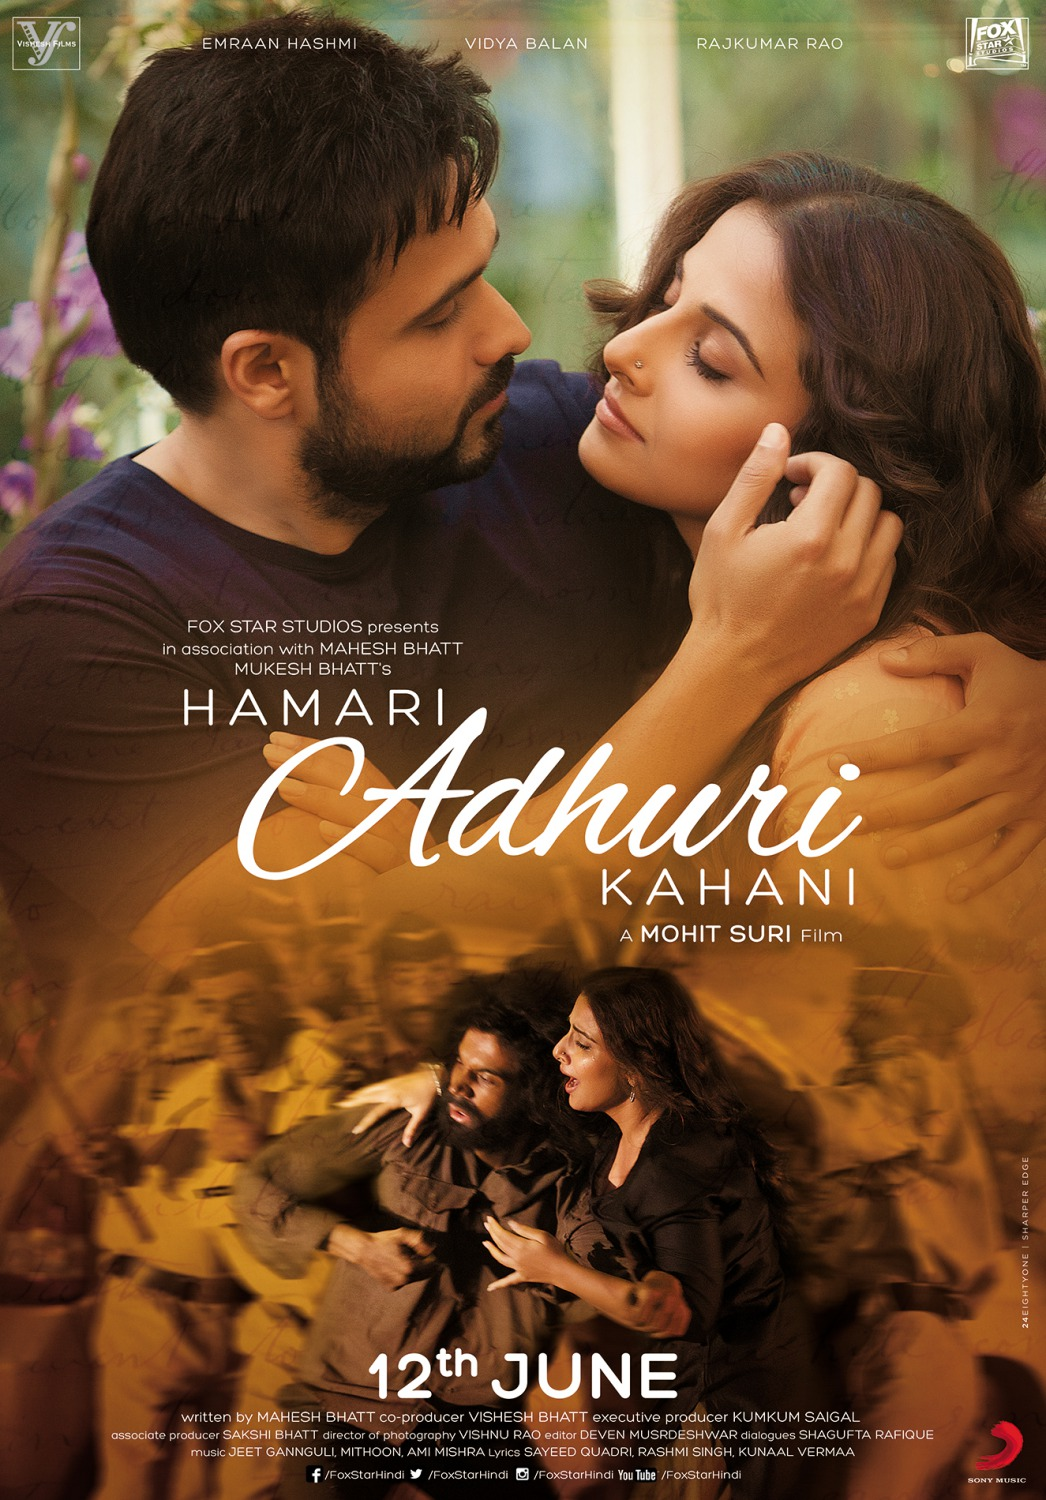 Hamari Adhuri Kahani 2015 Hindi 1080p BluRay x264 -Esub ~ Hon3y | 8.39 GB |